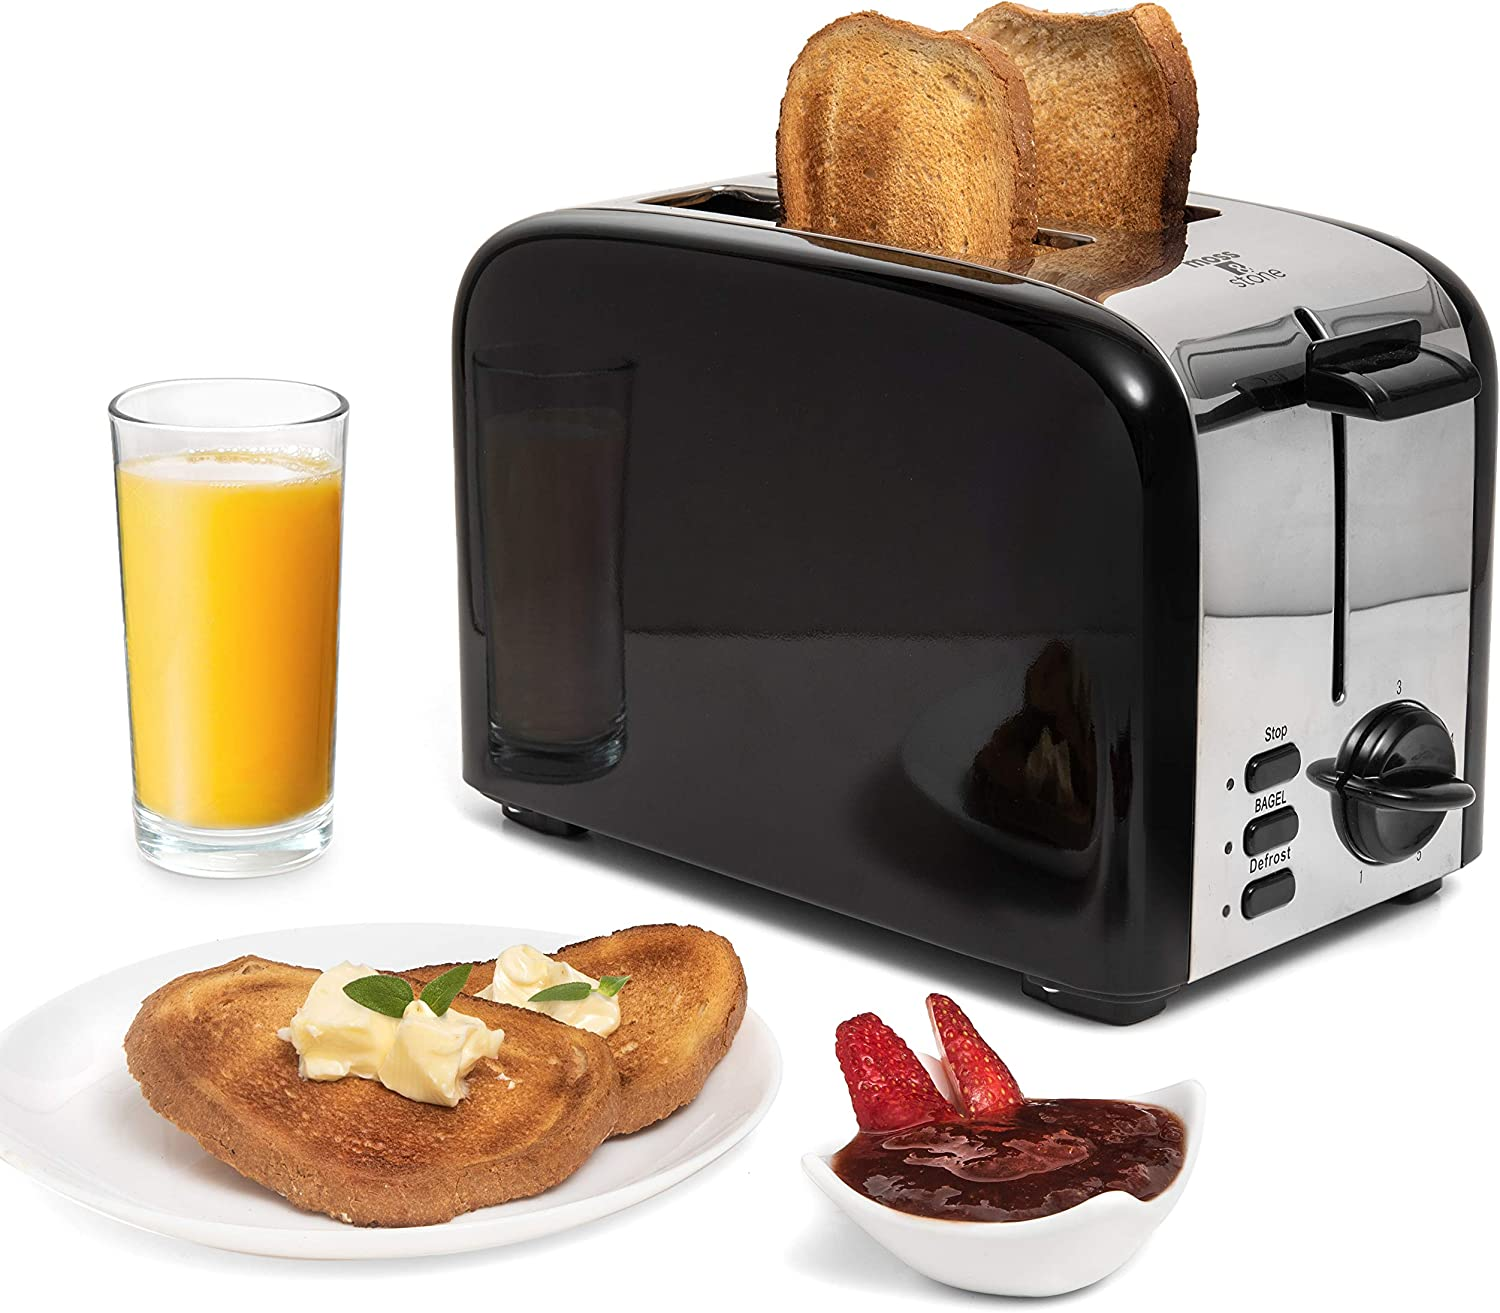 2 Slice Toaster, 1.5in Extra-Wide Slot Toaster For Bagel & Defrost with 5 Shade Settings, with Removable Crumb Tray (black toaster) By Moss & Stone.